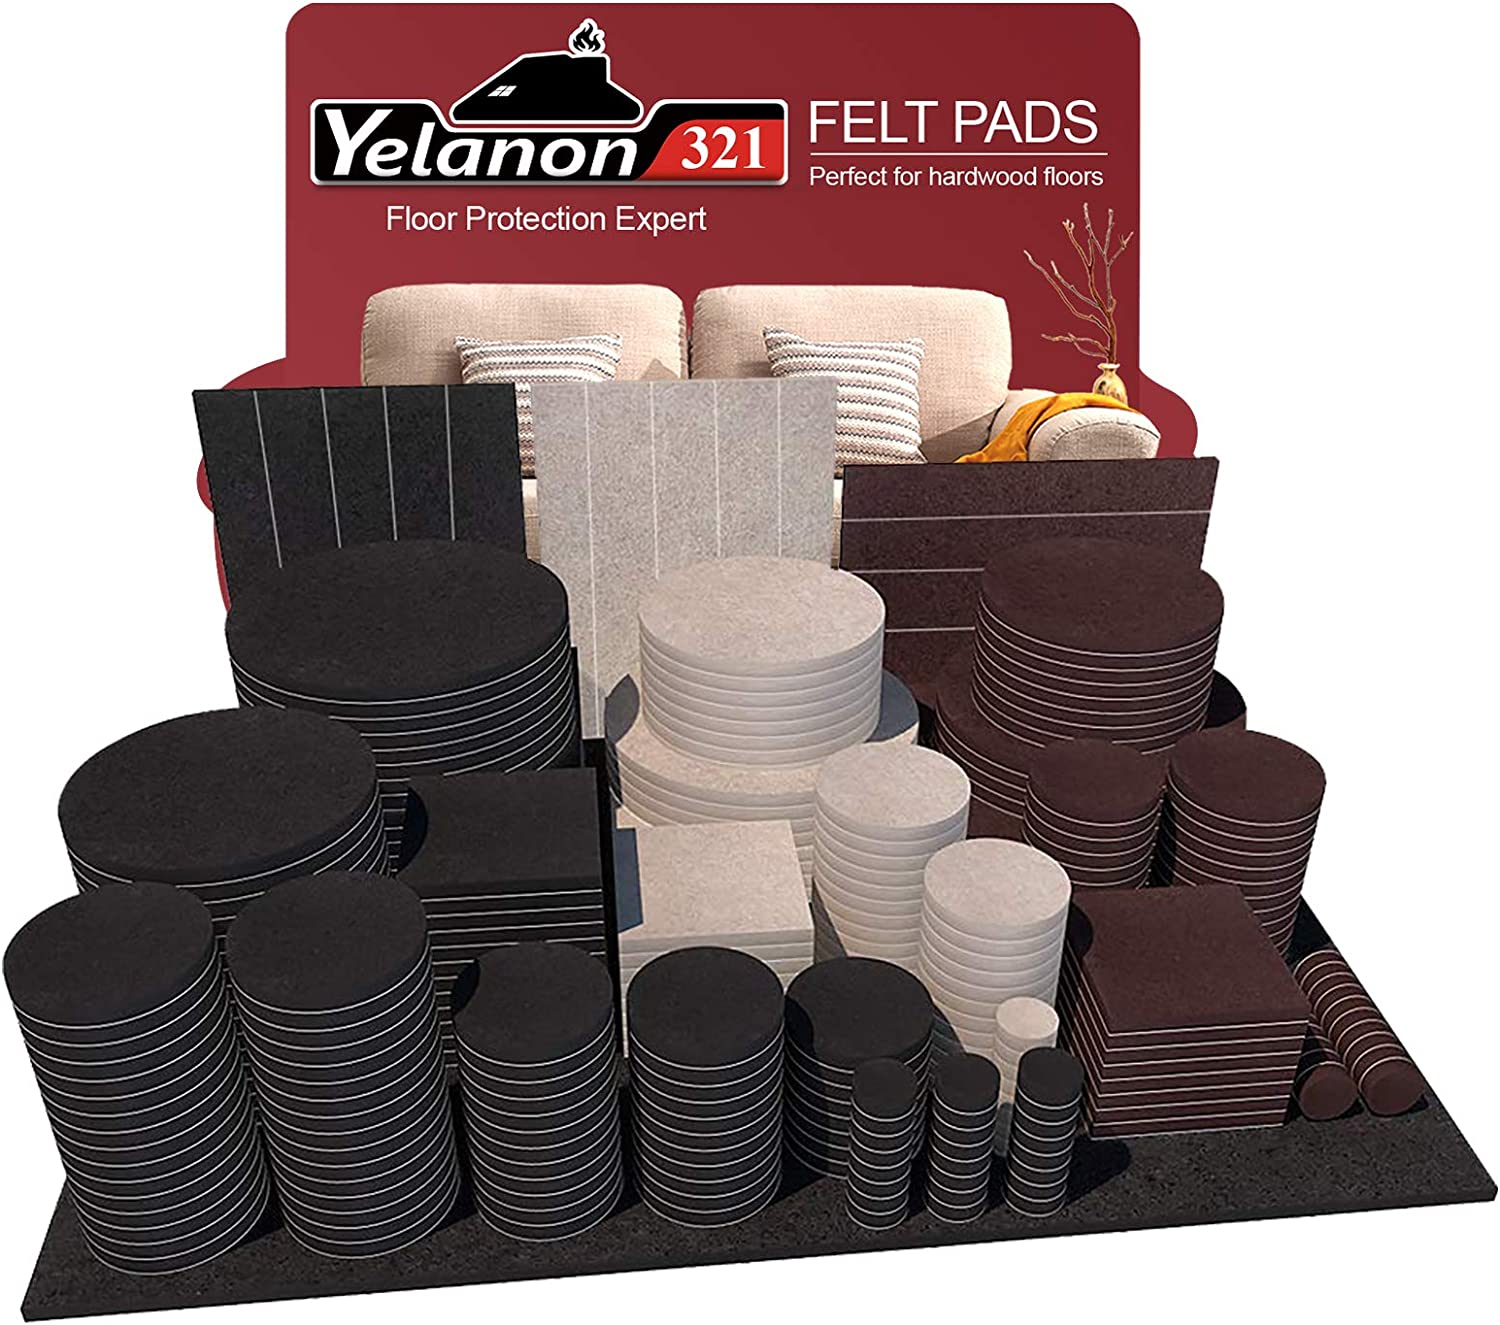 Yelanon Furniture Pads 321 Pieces - Self Adhesive Felt Pad Brown Felt Furniture Pads Anti Scratch Floor Protectors for Chair Legs Feet for Protect Hardwood Tile Wood Floor & Laminate Flooring